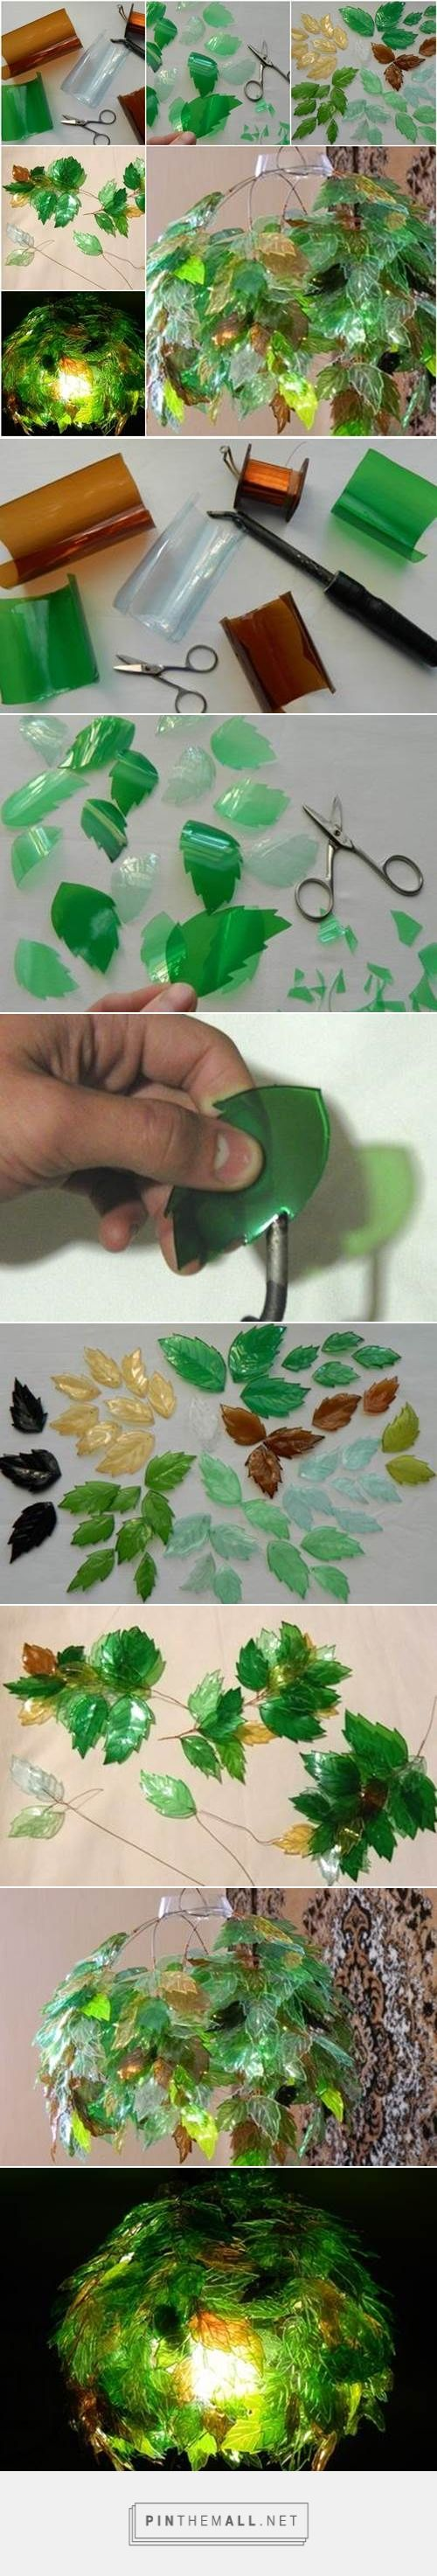 How to DIY Unique Chandelier from Plastic Bottles | iCreativeIdeas.com - created via http://pinthemall.net